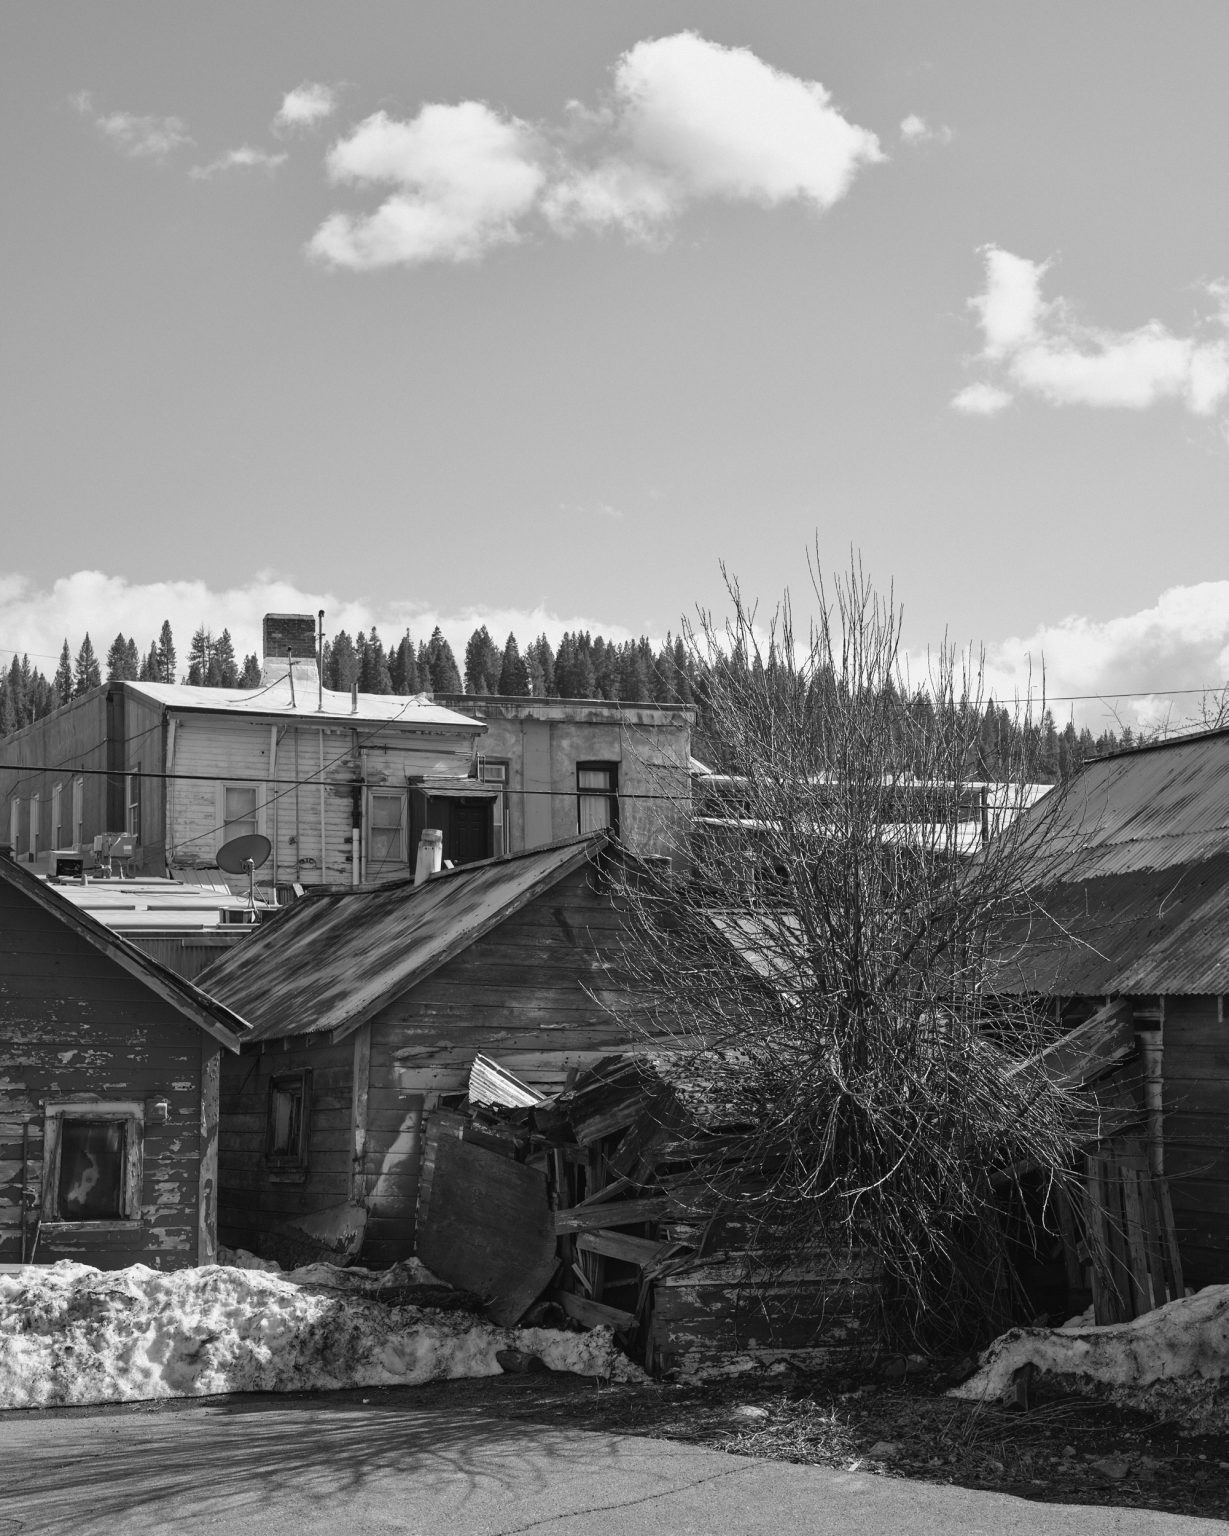 Back lot and sheds in the winter. California 2020